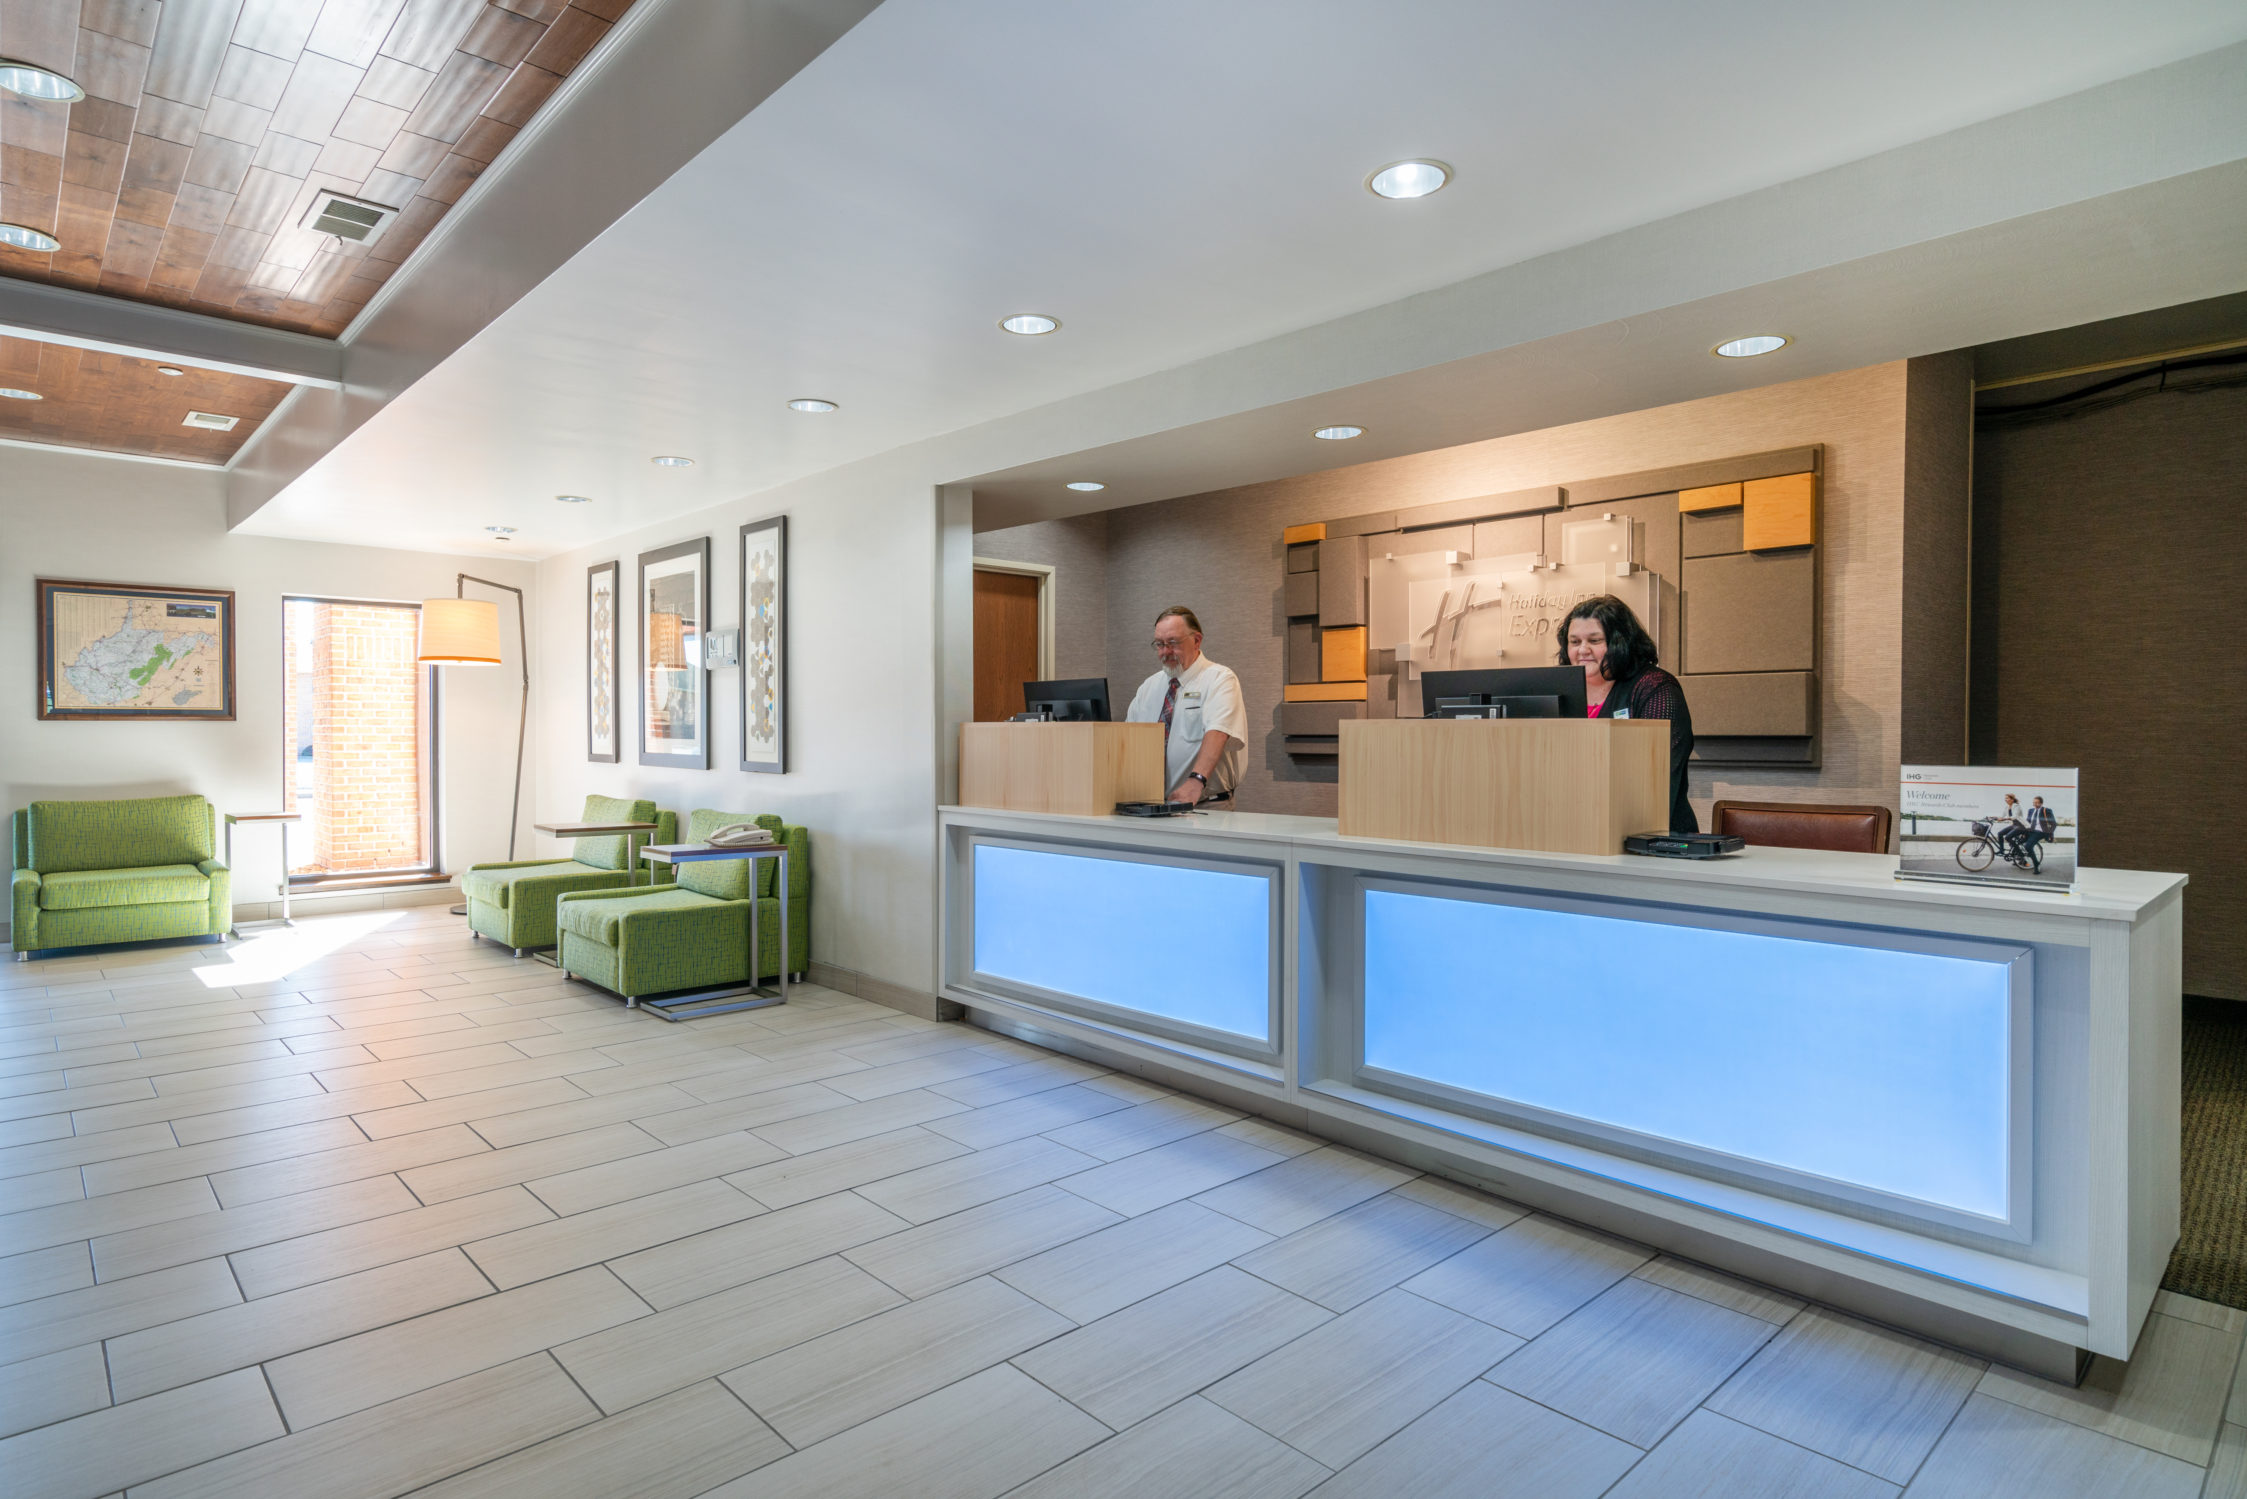 Holiday Inn Express Amp Suites Elkins Randolph County Tourism